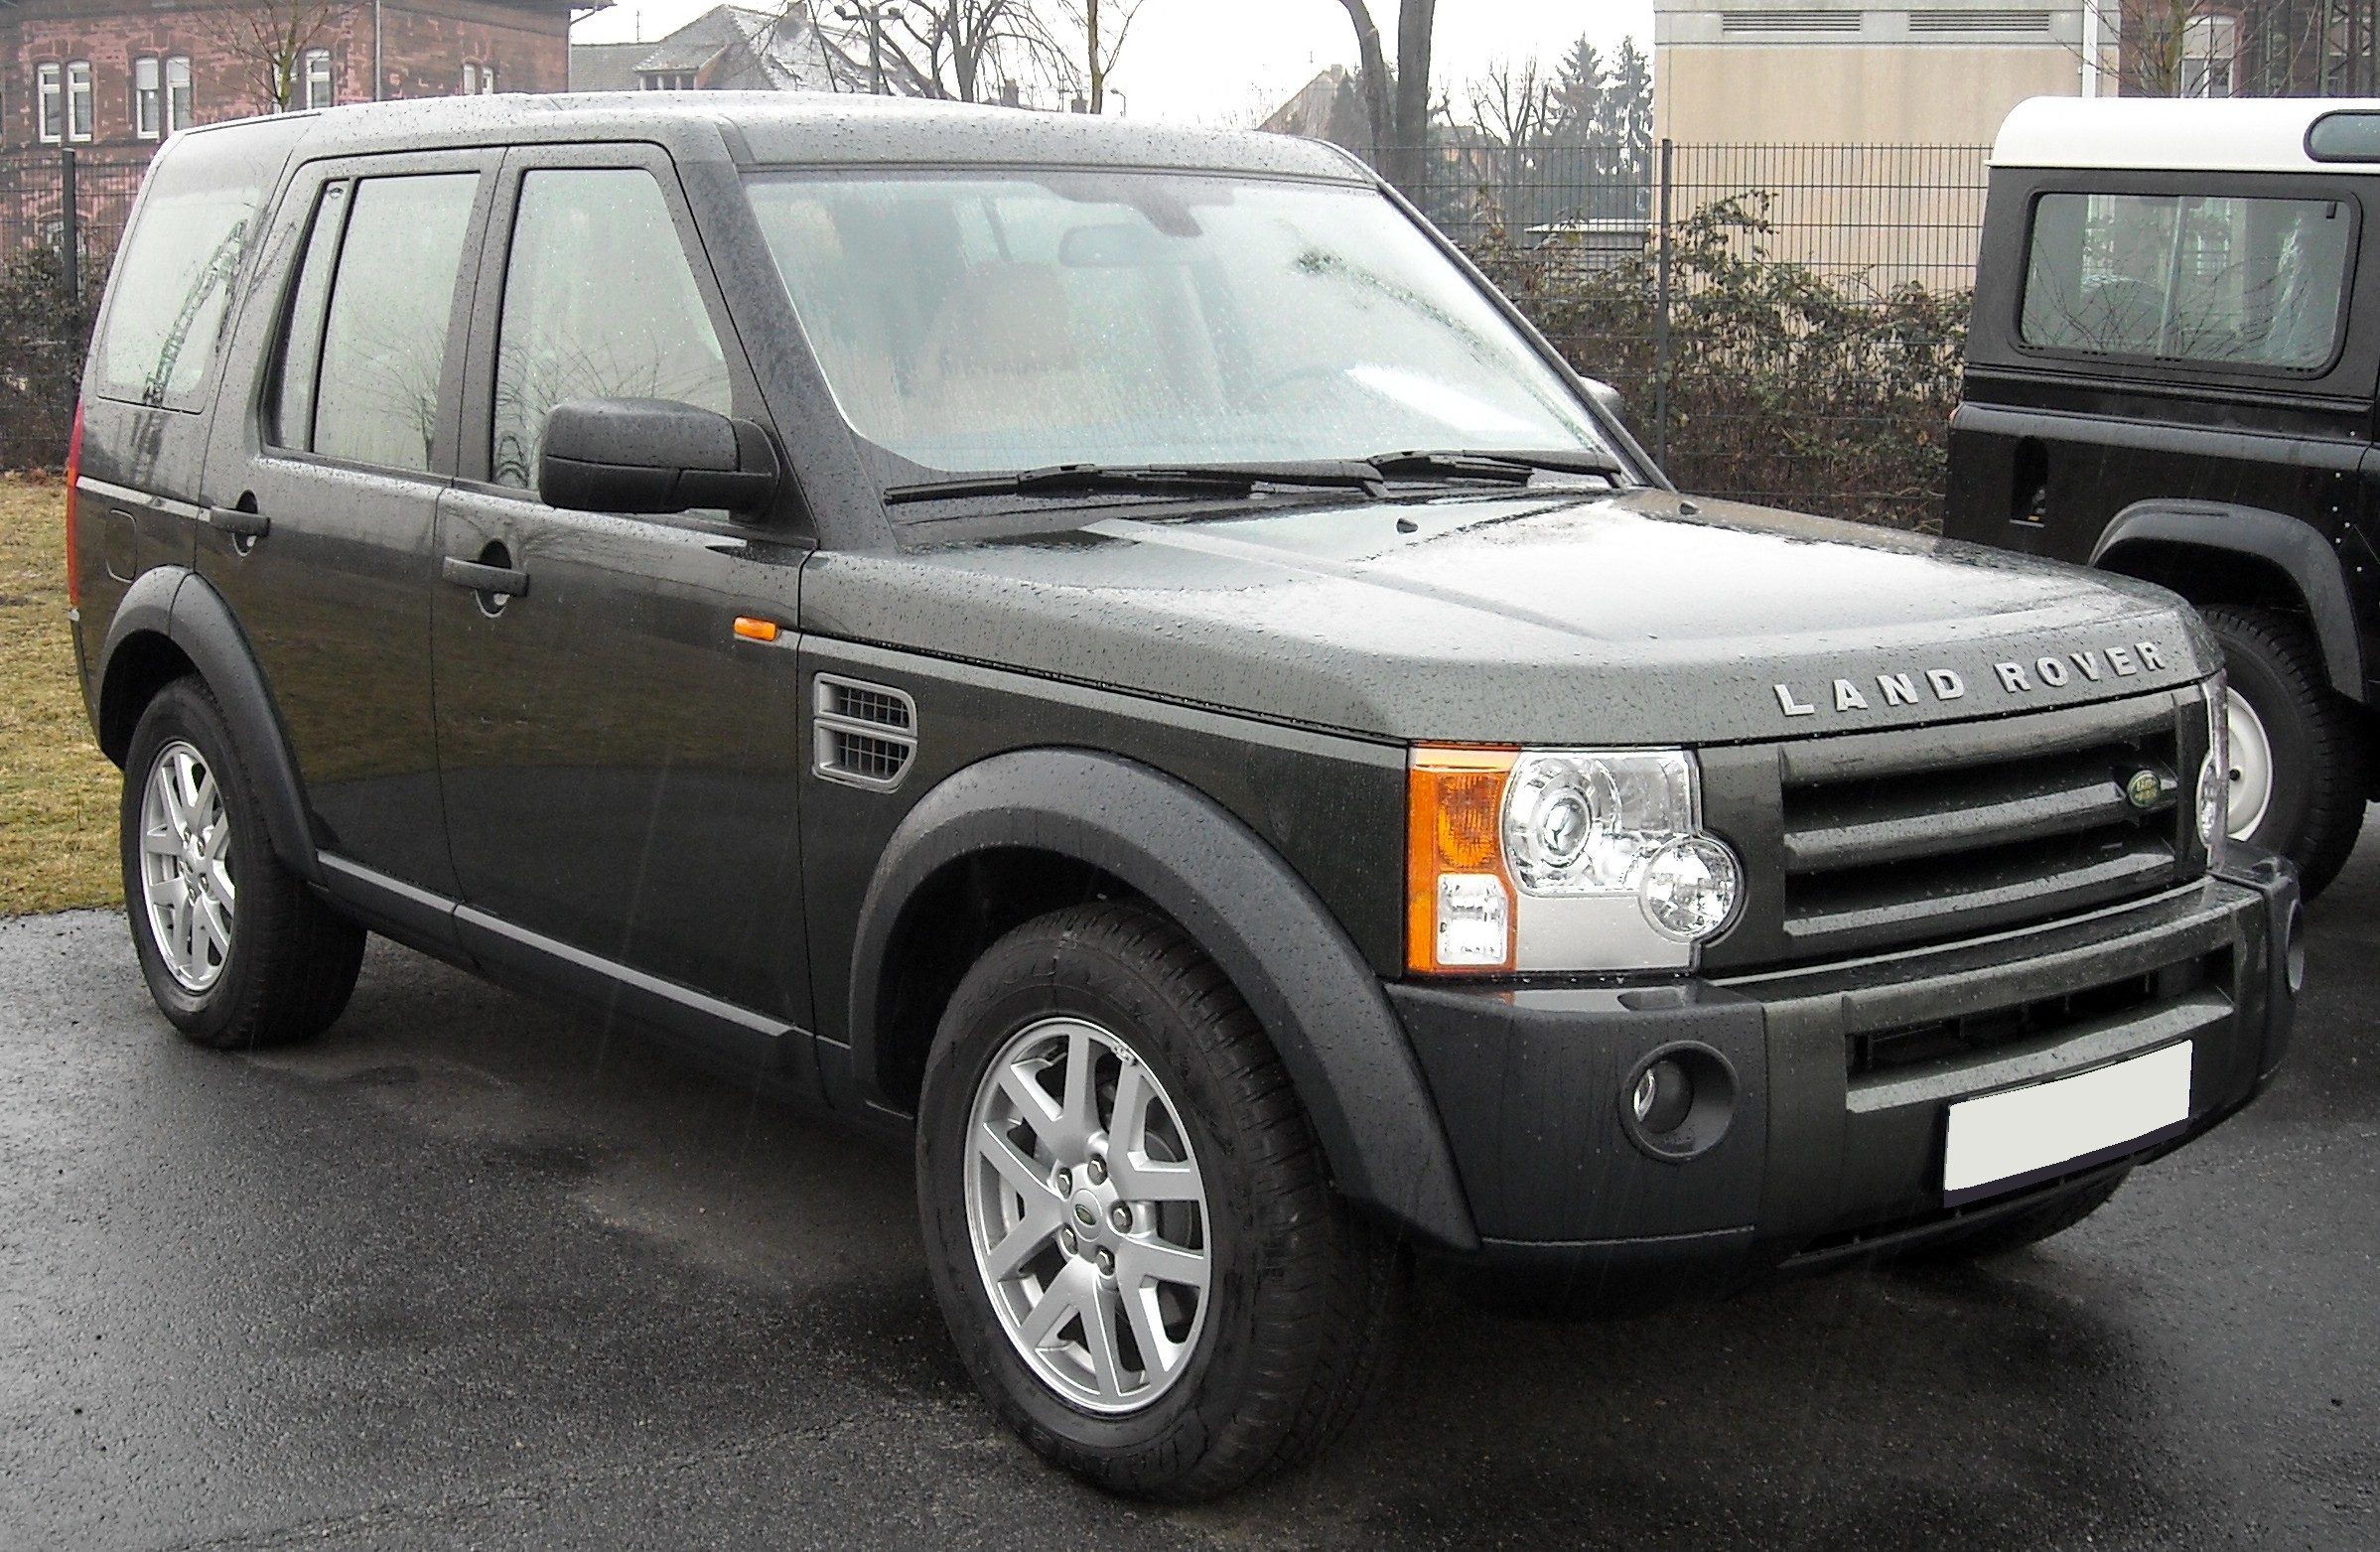 Land Rover Discovery 3 #12